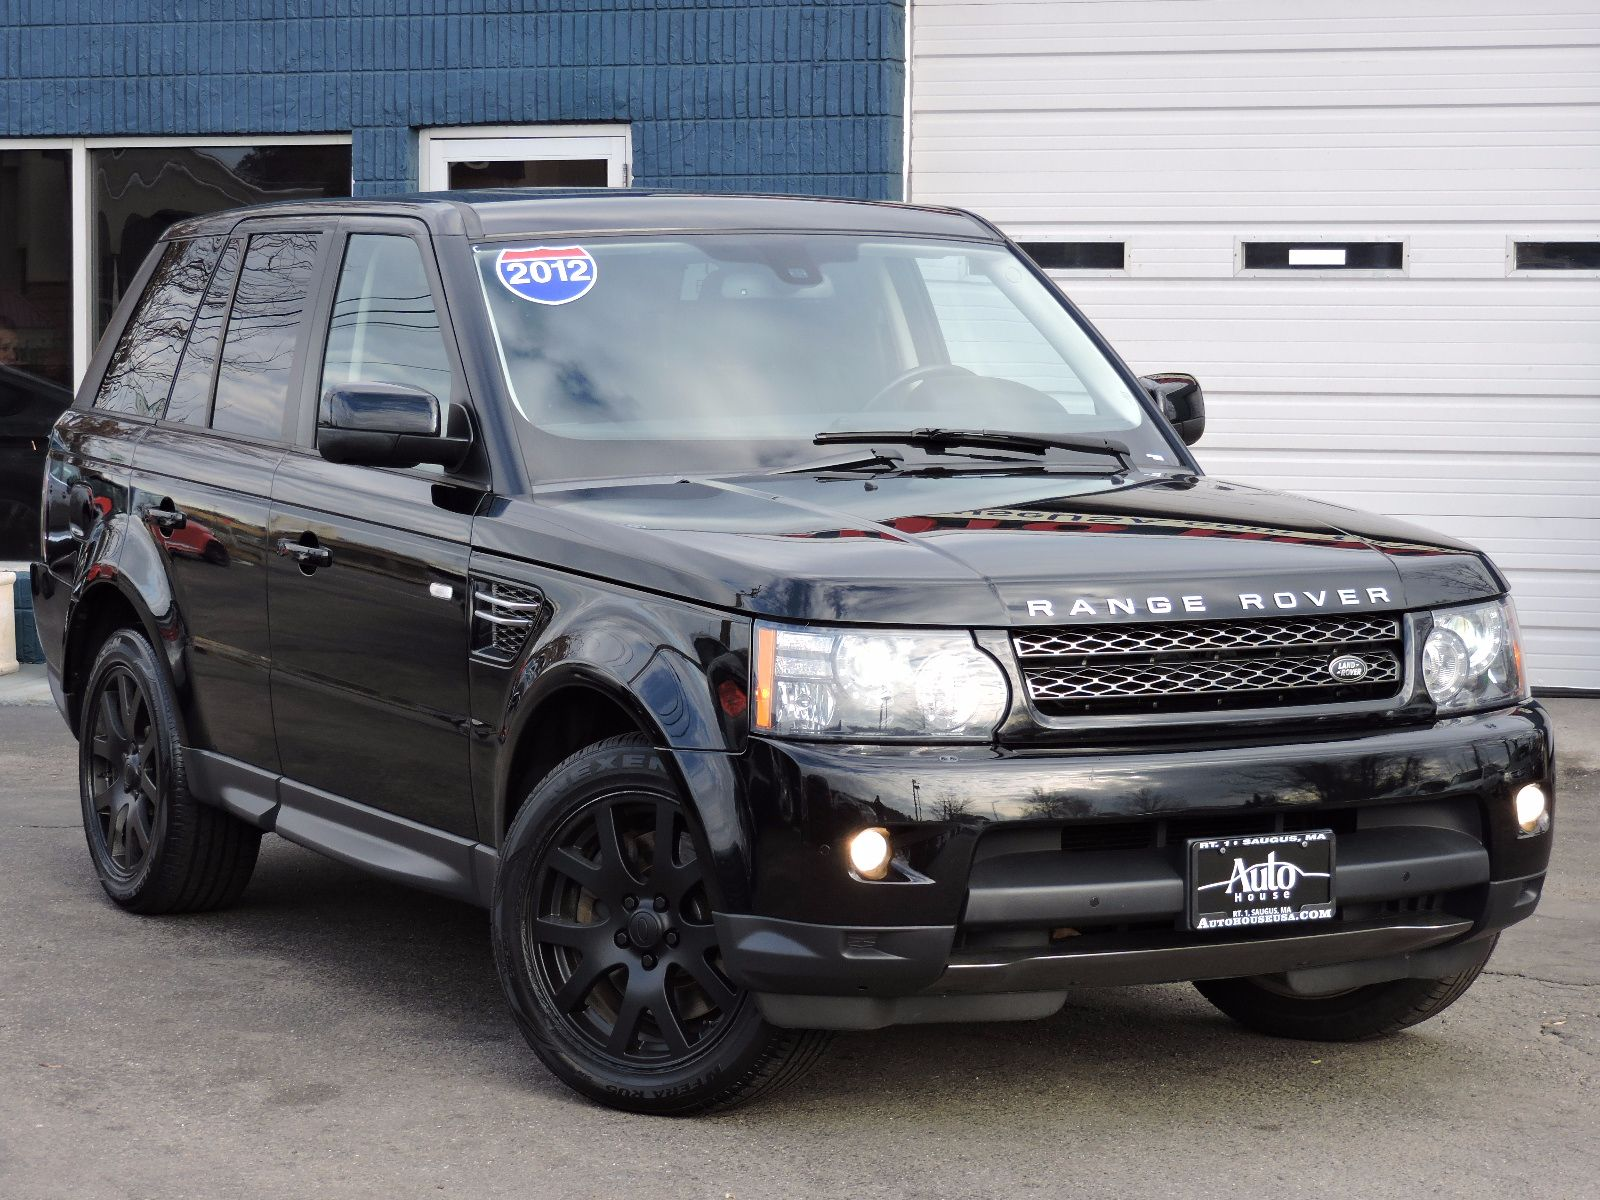 Used 2012 Land Rover Range Rover HSE Sport at Saugus Auto Mall